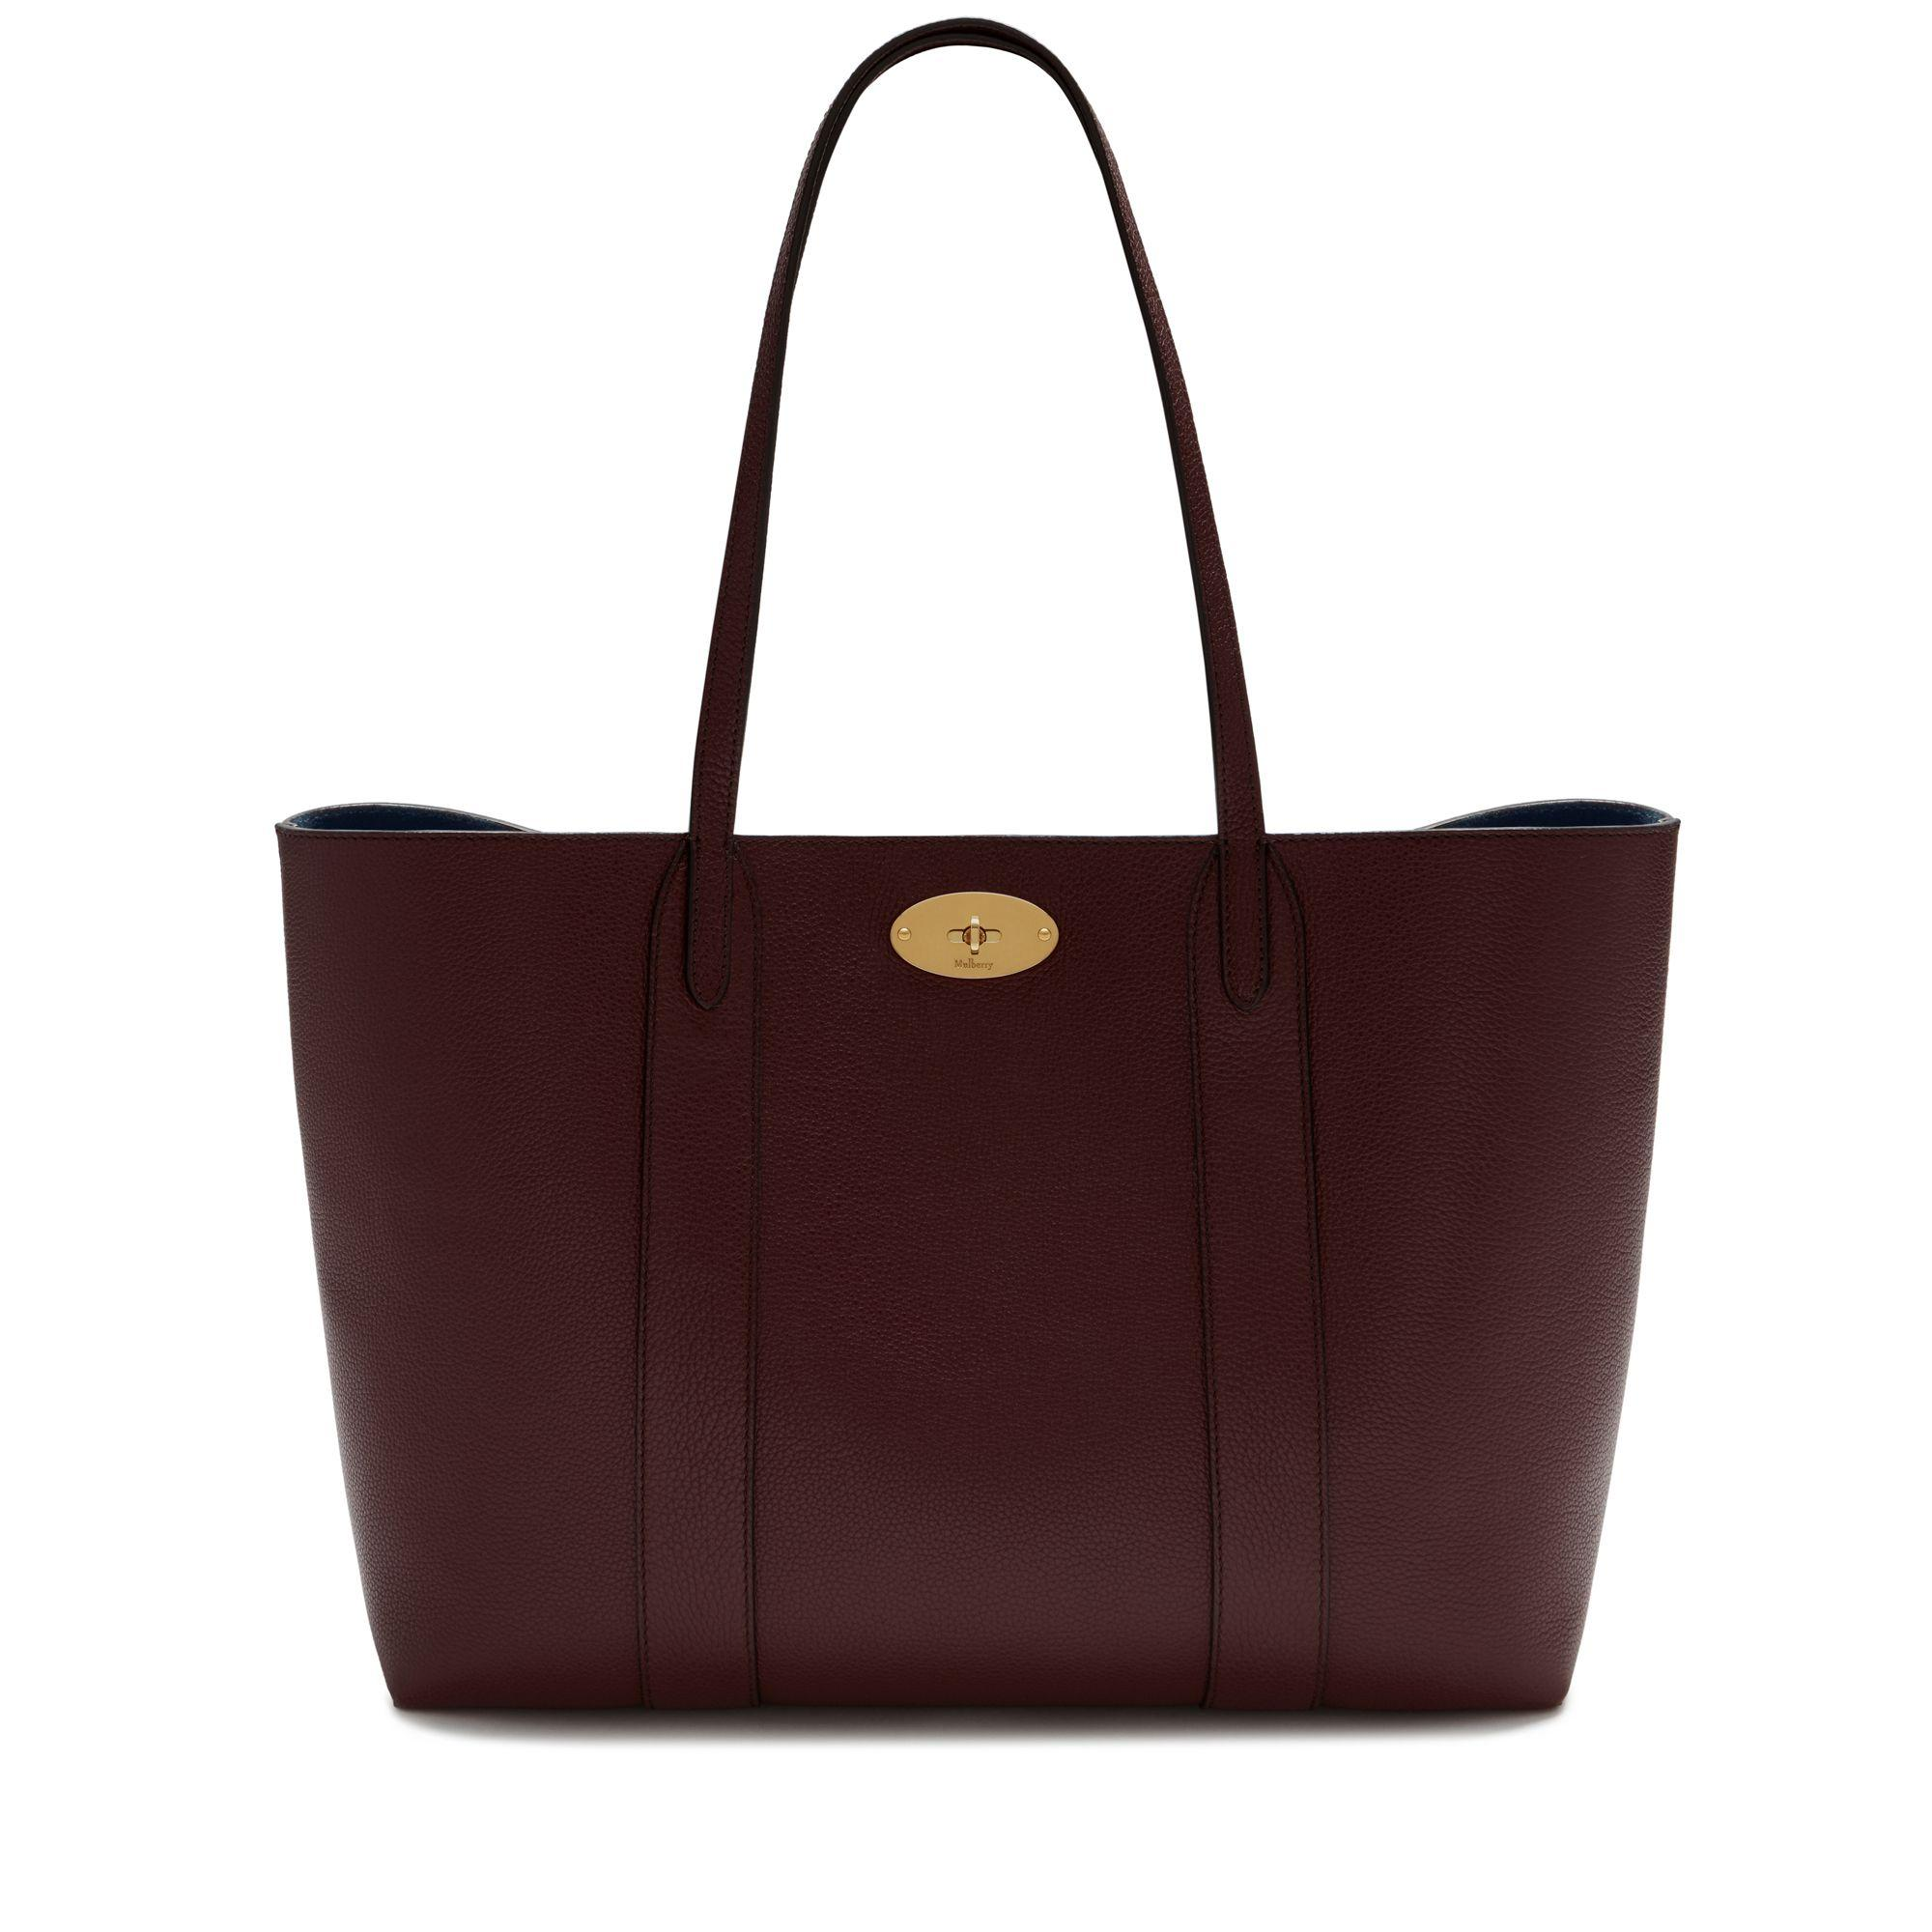 Mulberry - Red Bayswater Tote In Burgundy Small Classic Grain - Lyst. View  fullscreen 58d7bc4250ef1